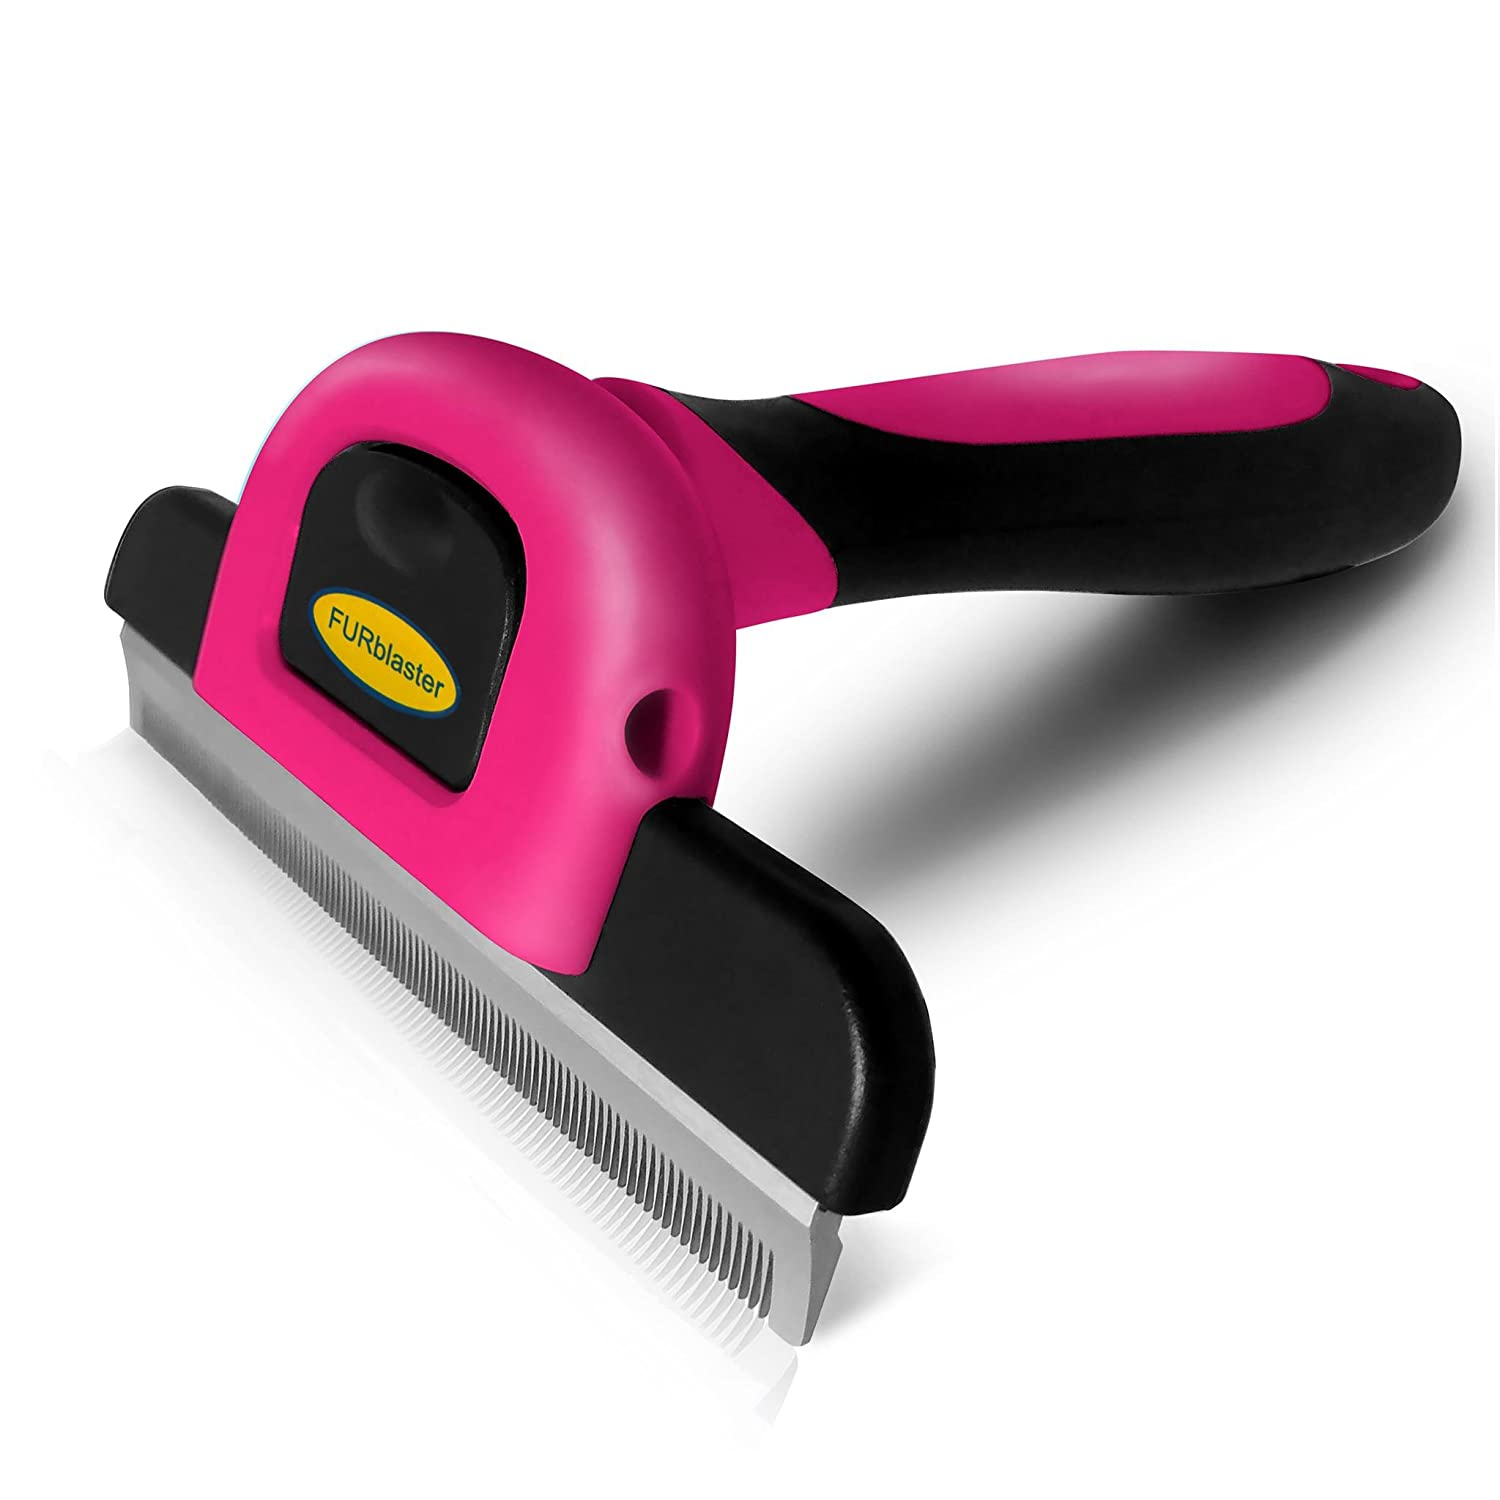 DakPets Deshedding Brush-Dog Hair & Cat Hair Shedding Tool-Effective Grooming Tool for Cats Dogs with Short Medium Long Fur-Reduces Pet Hair Shed by Up to 95%